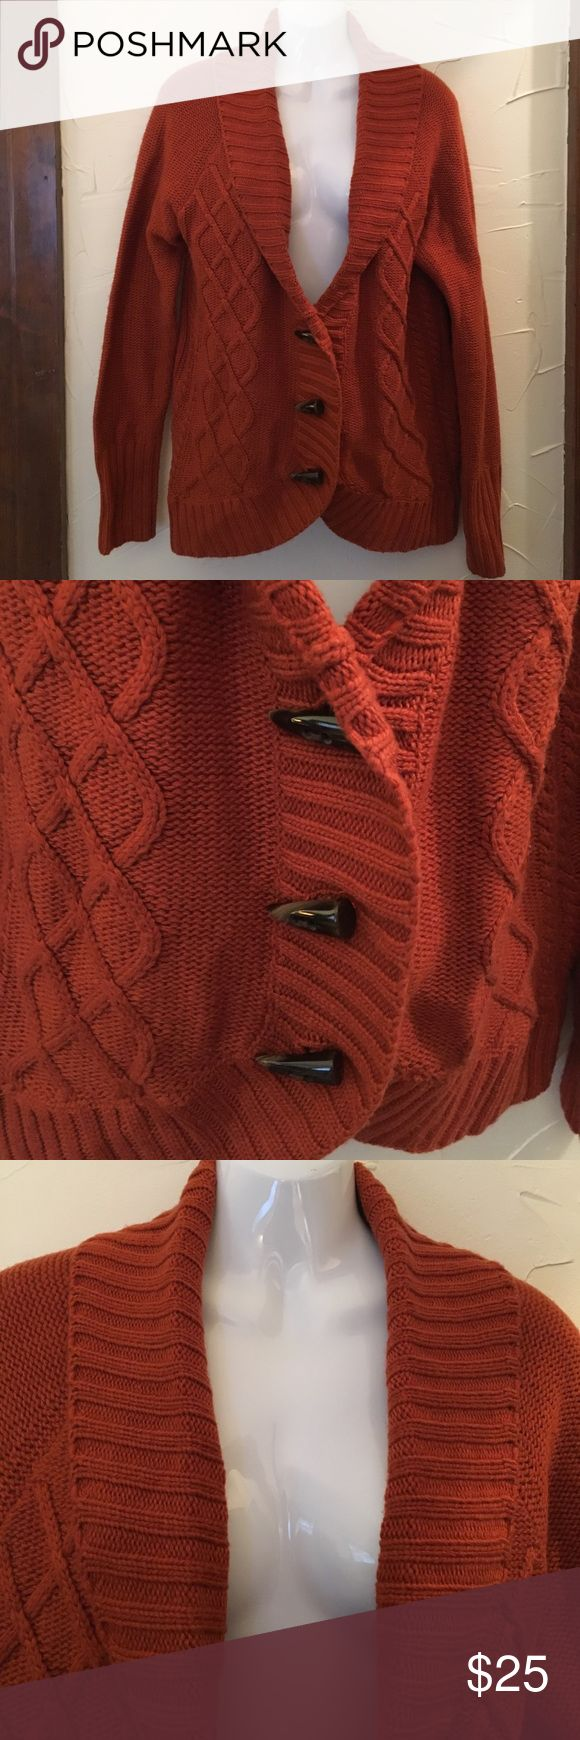 Market & Spruce Orange Sweater Big and Comfy Orange Sweater. Has three buttons. Size Large, so it hangs funny on the mannequin. Super comfortable and probably meant to be a bit oversized. Brand New from the fashion subscription box Stitch Fix. Market & Spruce Sweaters Cardigans